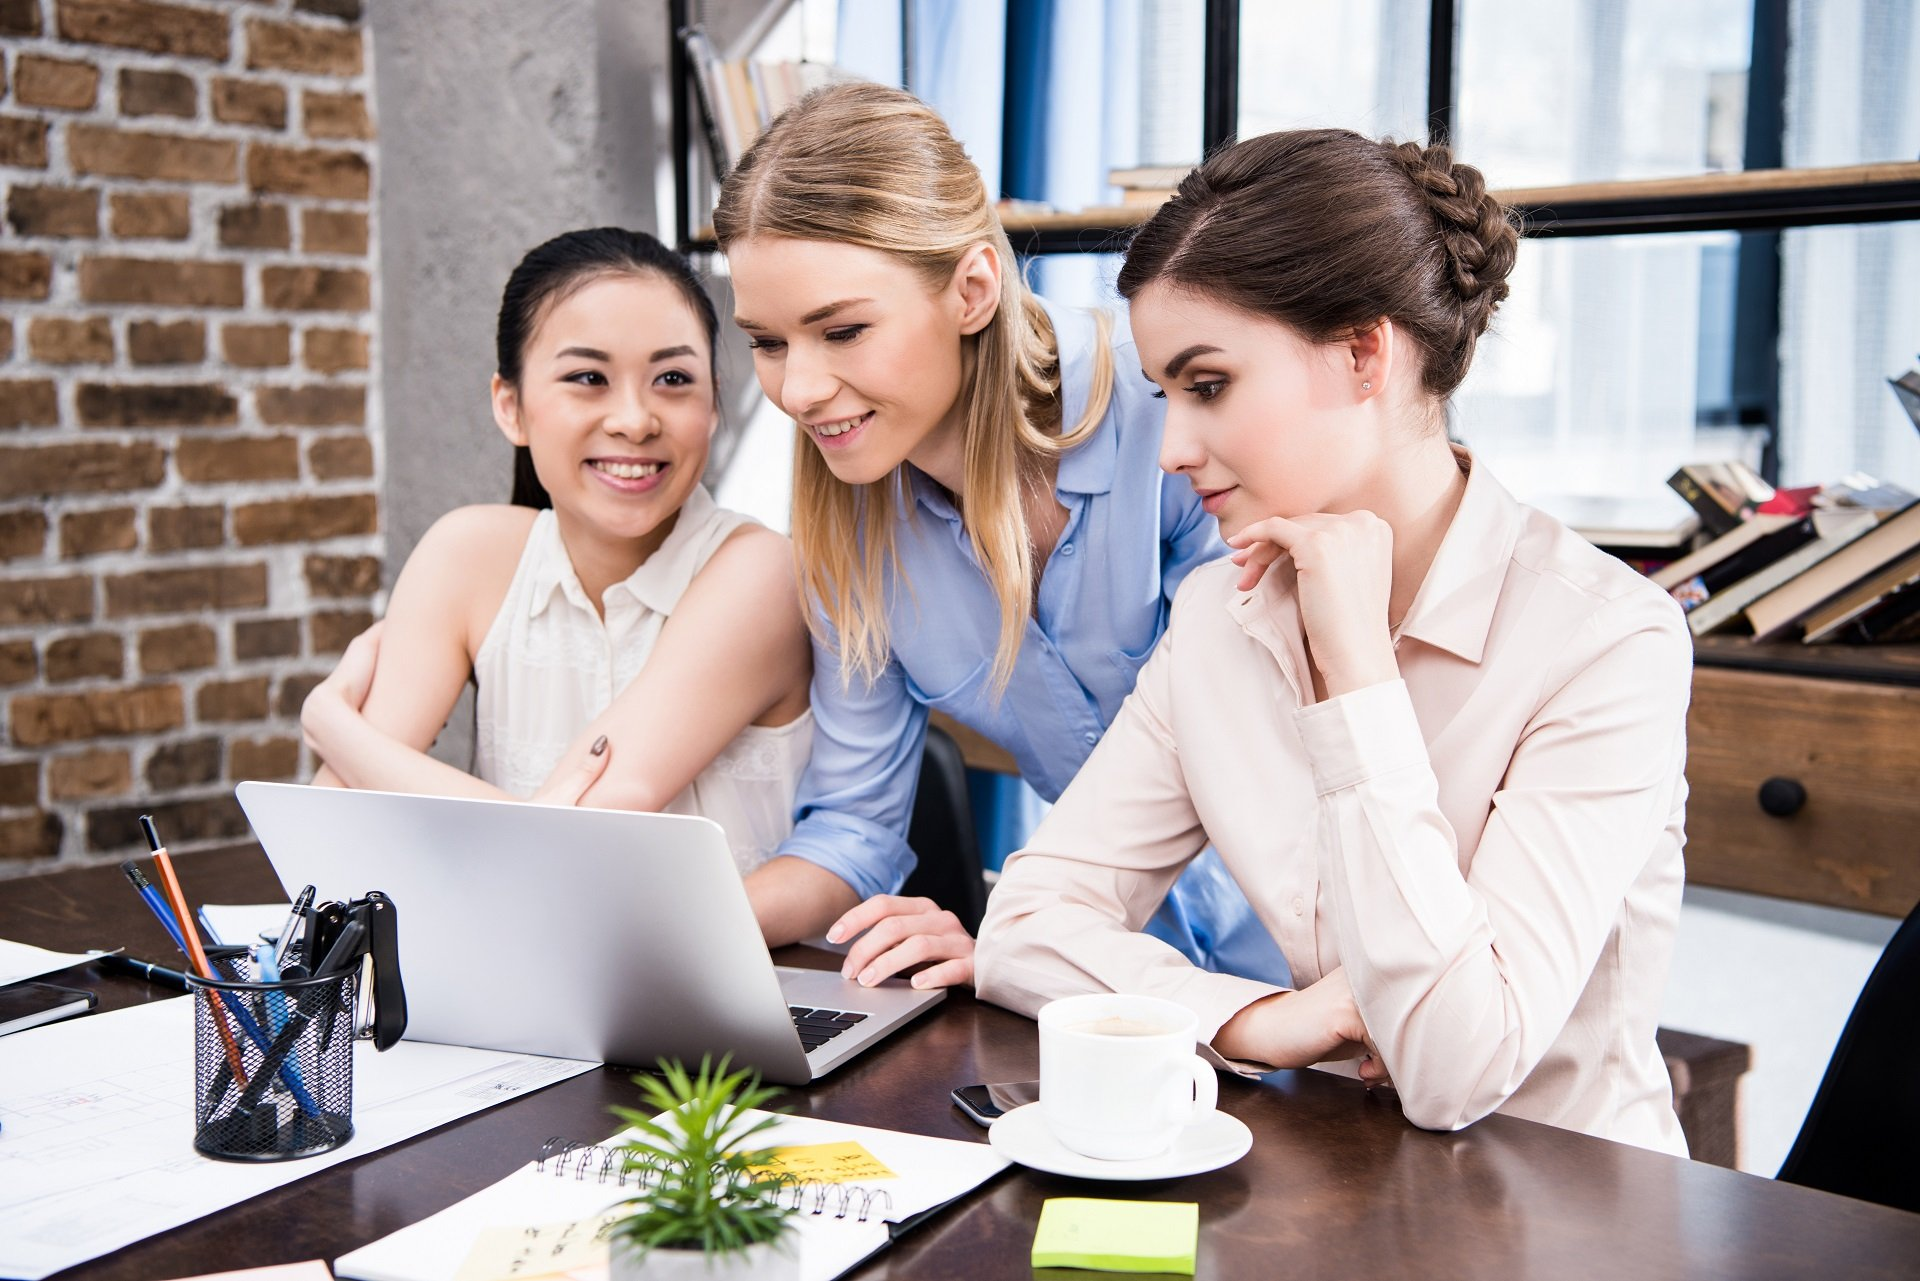 Smiling young businesswomen using laptop together at workplace